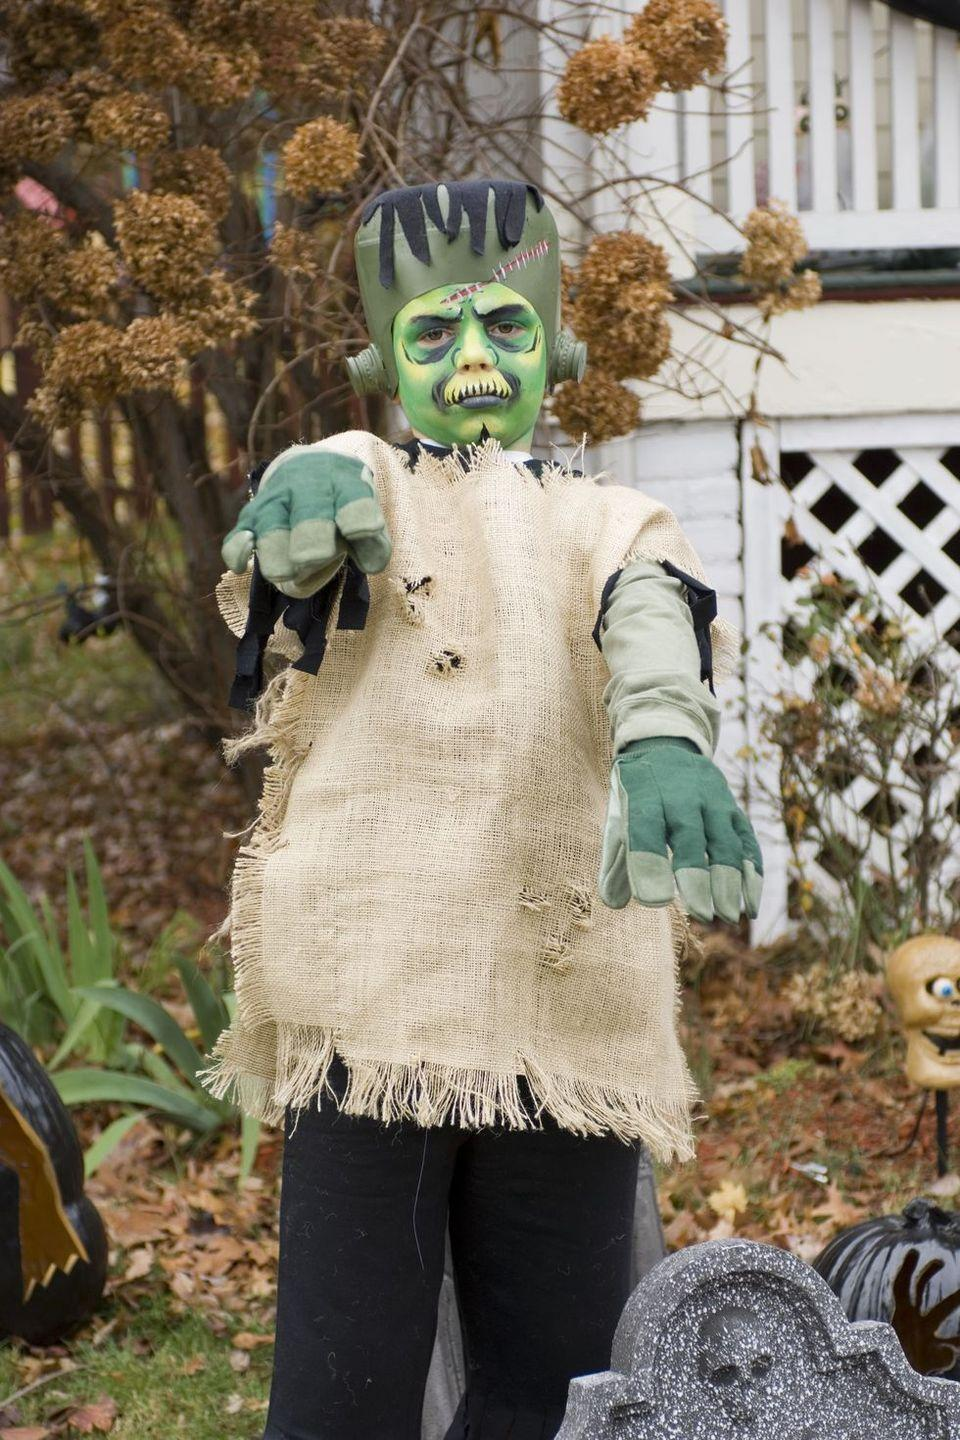 """<p>A milk carton and green spray paint are all you need to recreate this classic monster's boxy head.</p><p><strong><em><a href=""""https://www.womansday.com/home/crafts-projects/how-to/a4240/halloween-costume-frankenstein-98803/"""" rel=""""nofollow noopener"""" target=""""_blank"""" data-ylk=""""slk:Get the Frankenstein's Monster tutorial"""" class=""""link rapid-noclick-resp"""">Get the Frankenstein's Monster tutorial</a>.</em></strong></p>"""